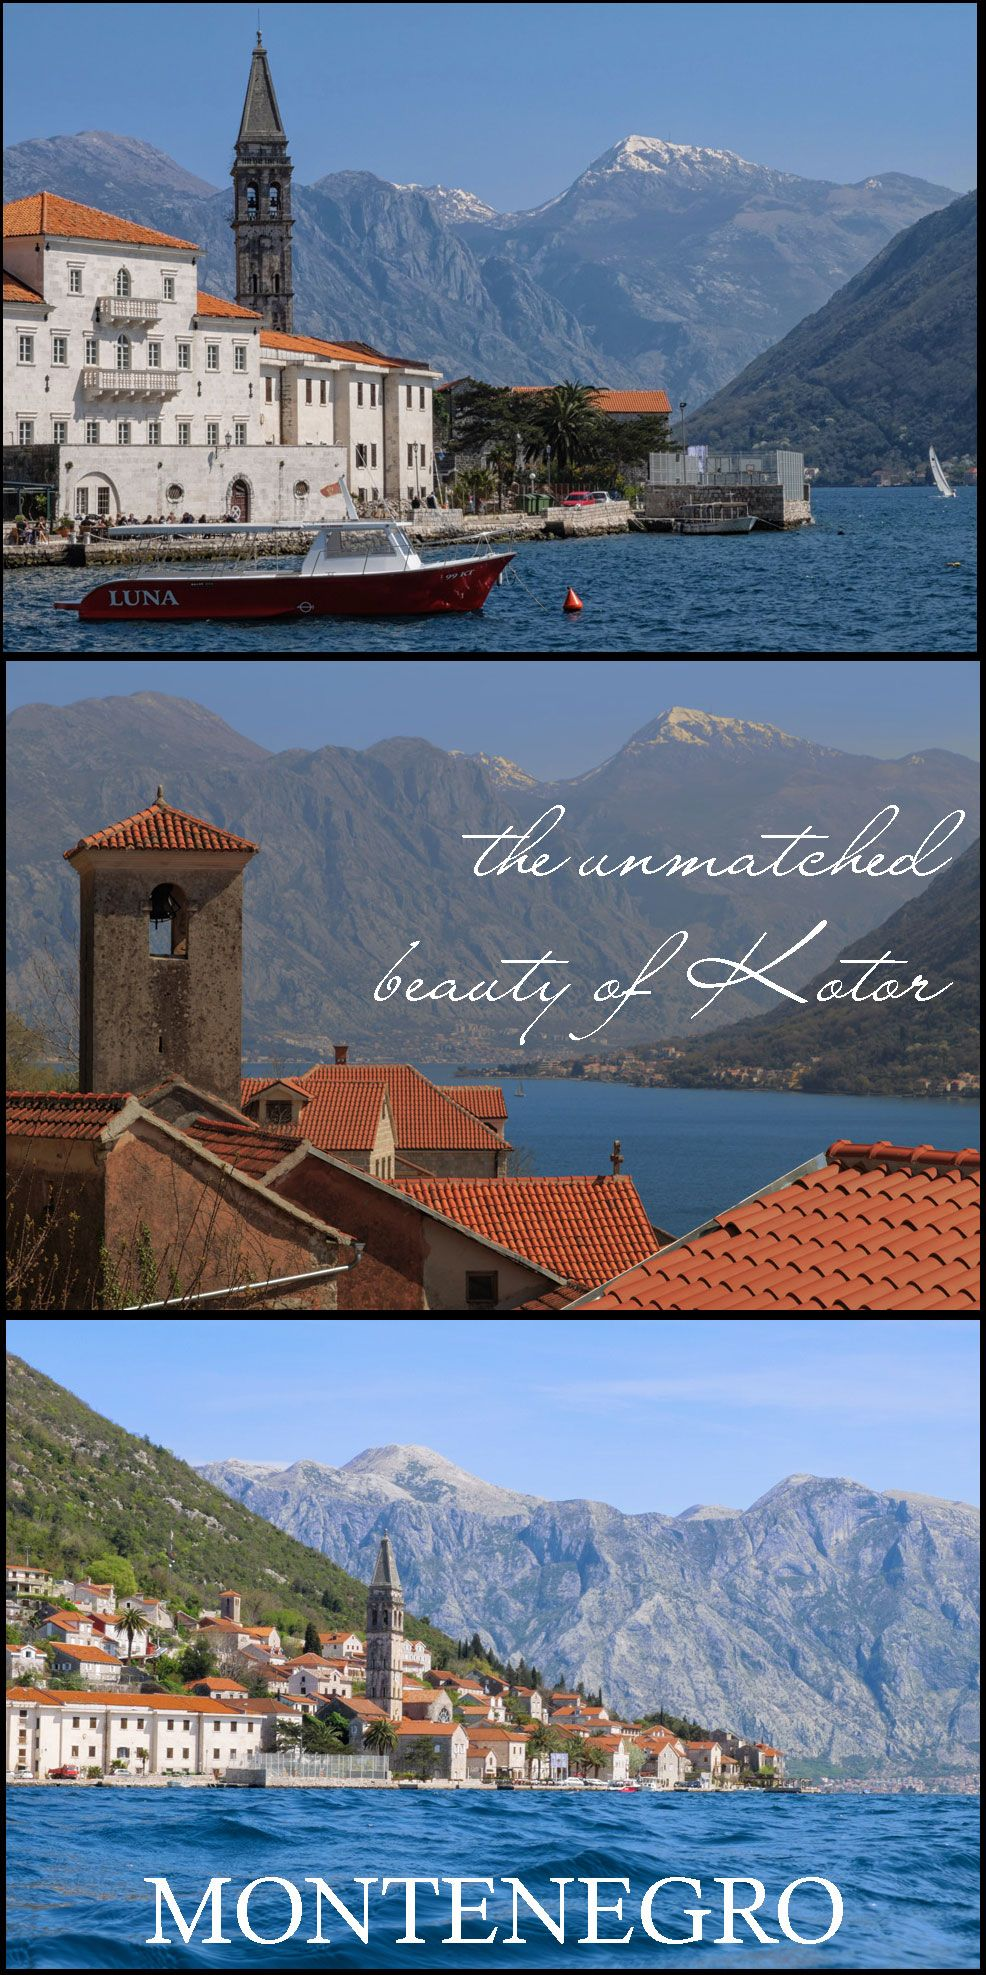 On Our First Day In Montenegro We Sat A Patio The Main Square Of Old Town Kotor Were Under Central Clock At Gate Where